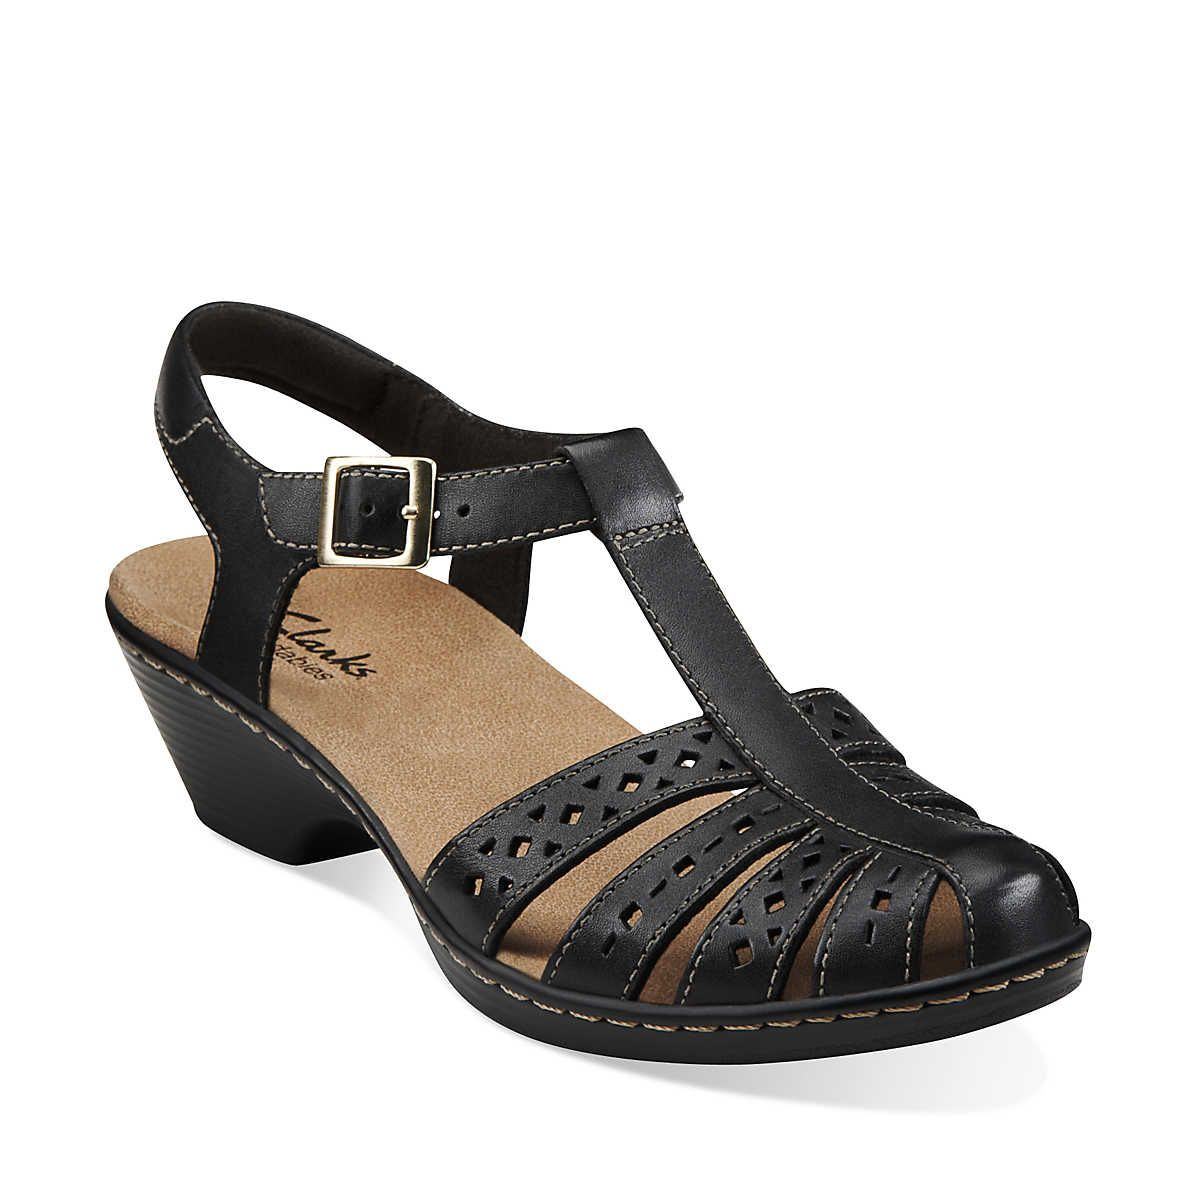 Wendy Lily In Black Leather Womens Sandals From Clarks Womens Sandals Clarks Shoes Women S Clarks Shoes Women [ 1200 x 1200 Pixel ]